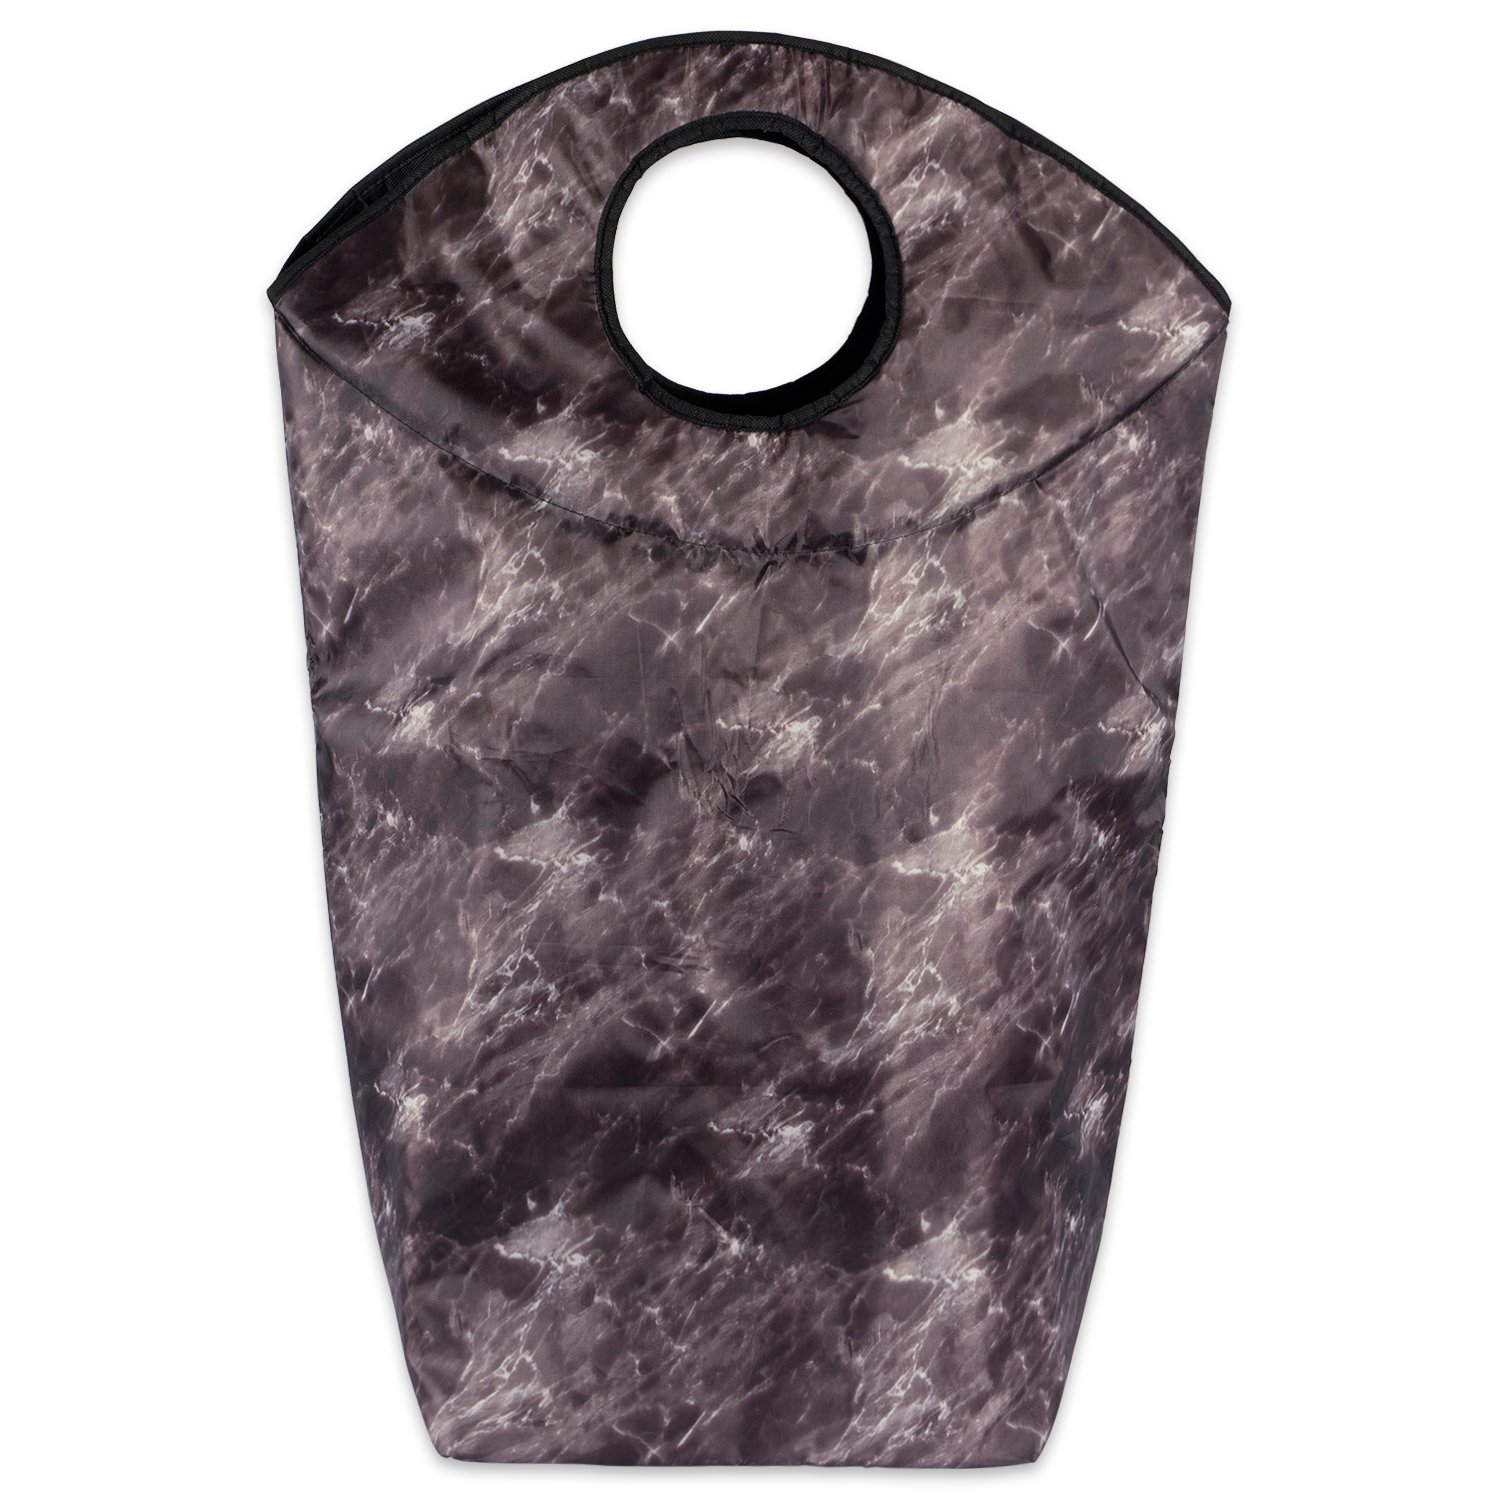 DII Collapsible Heavy Duty Fabric Laundry Hamper or Bag Perfect In Your Bedroom, Nursey, Dorm, Closet, Laundry Room, and Home Organization - Black Marble